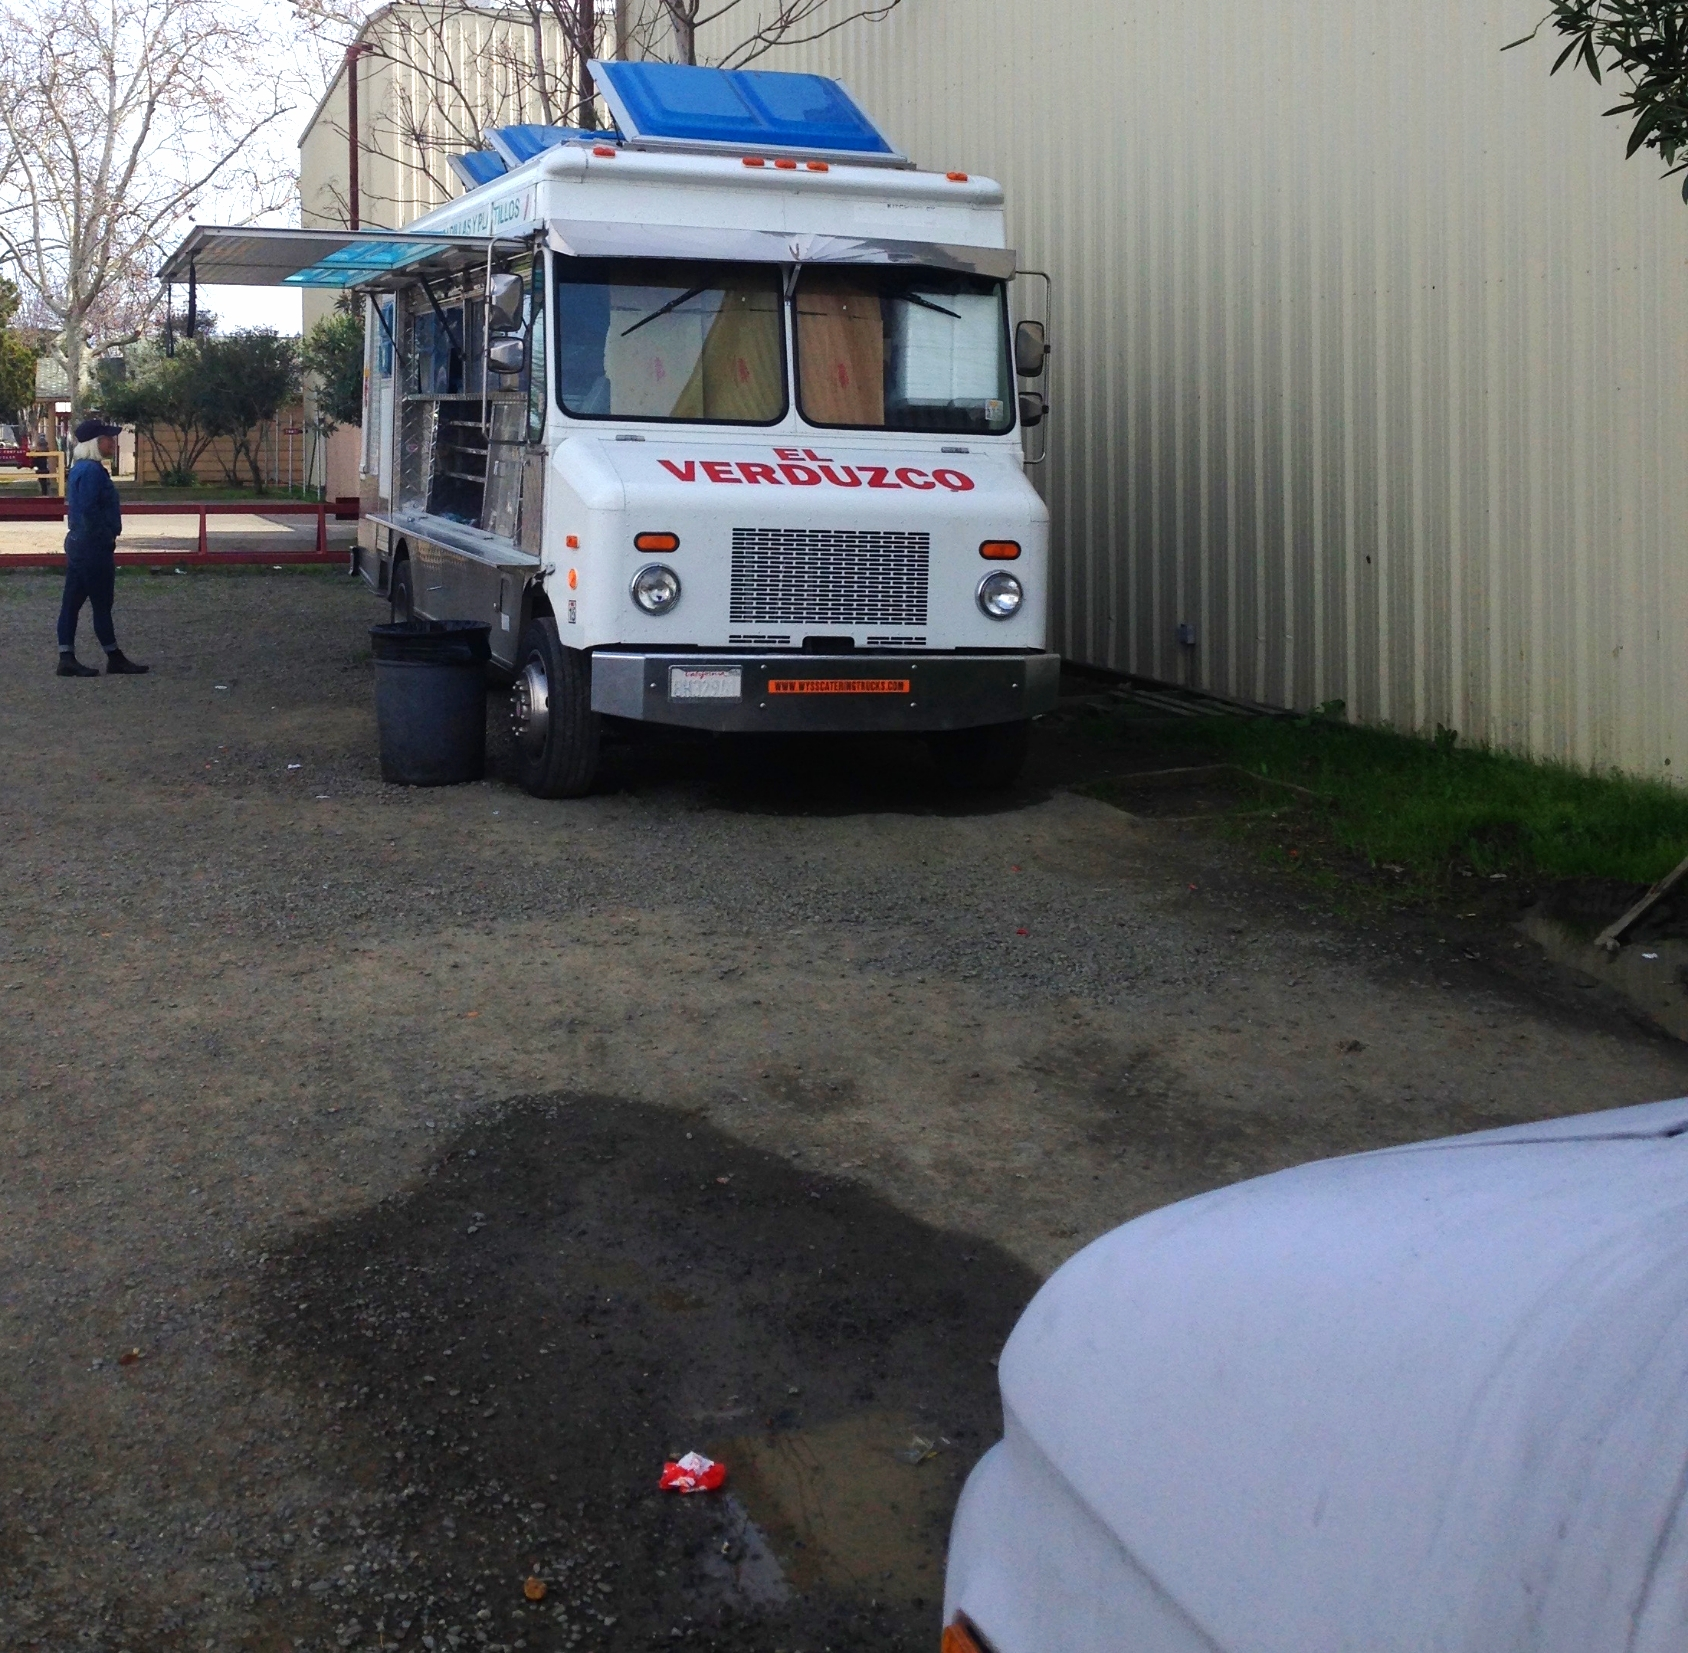 Taco truck in Winters, CA